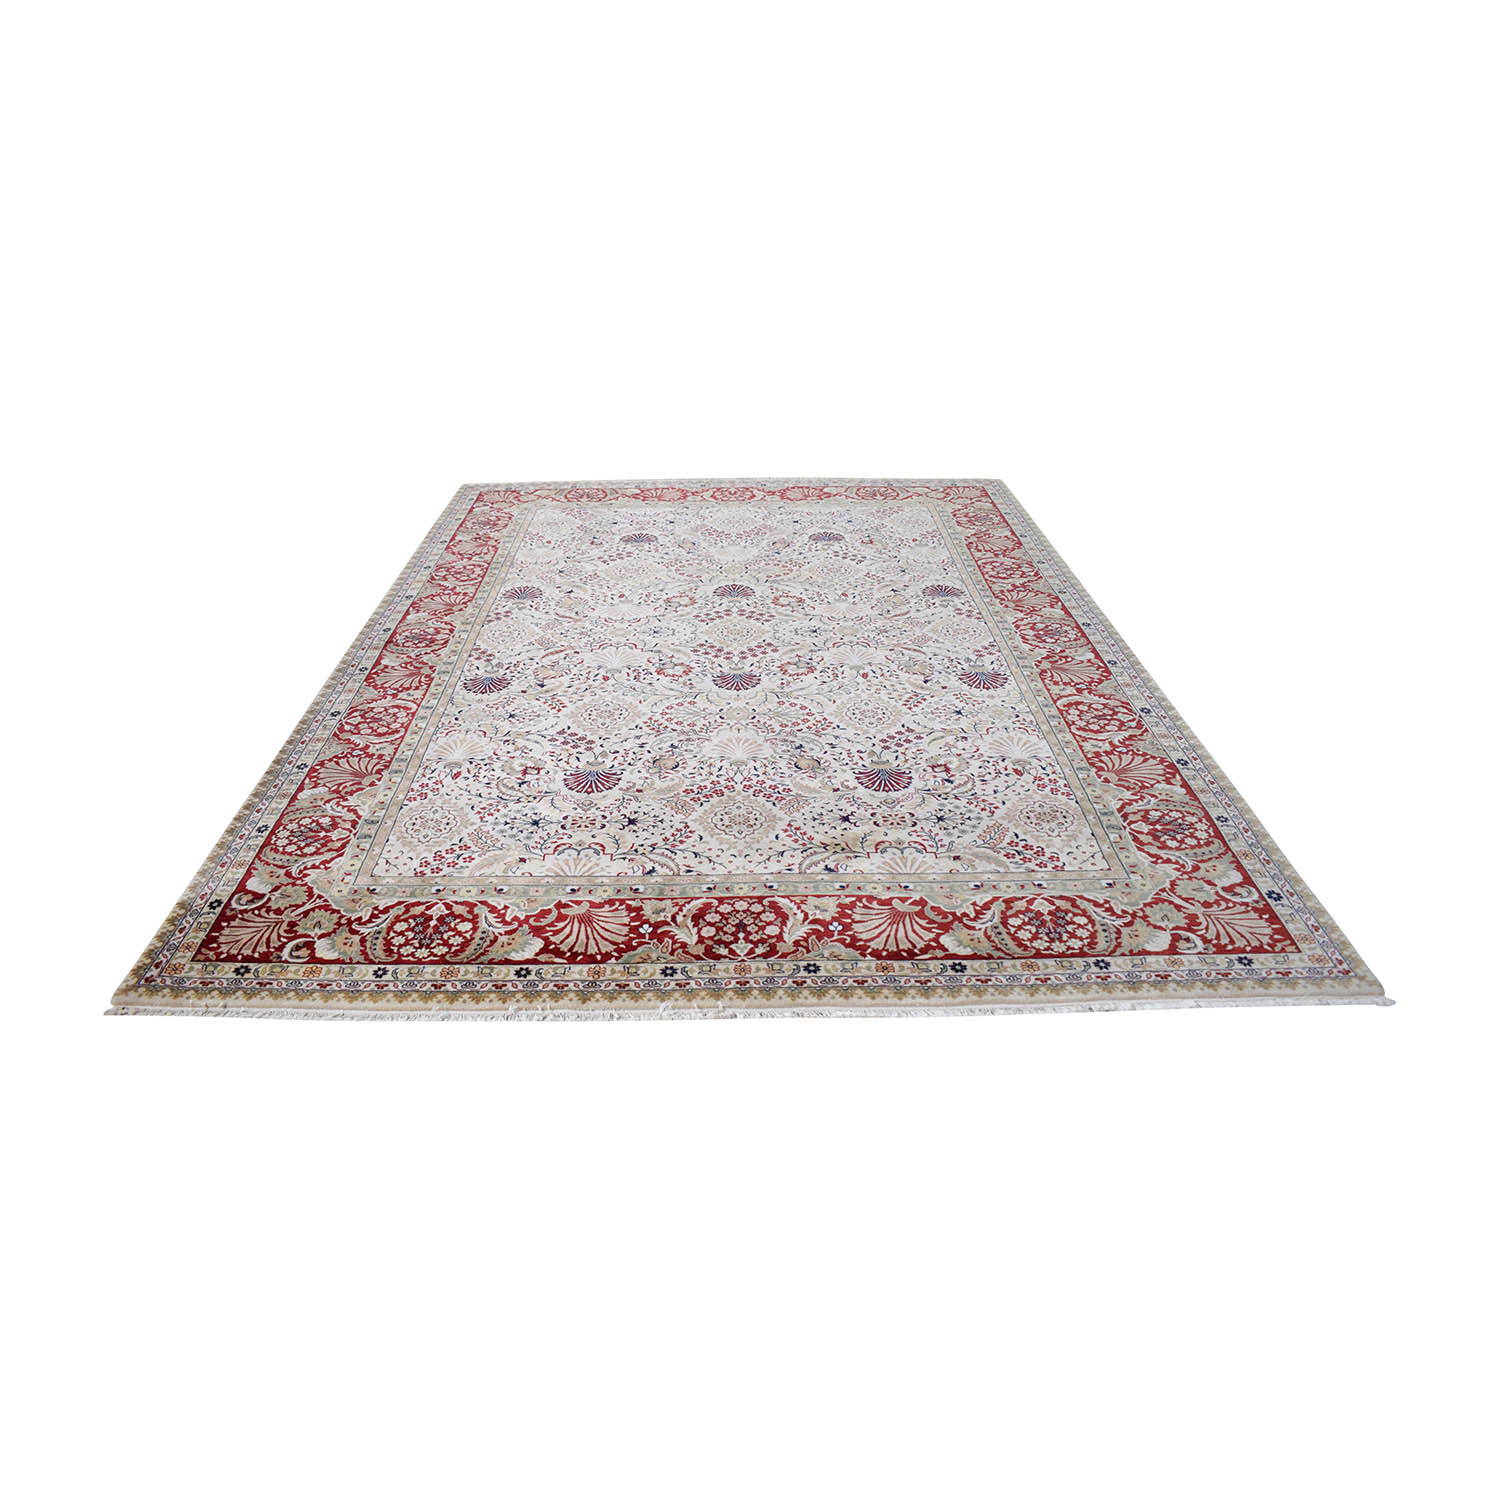 ABC Carpet & Home Indian Tabriz Rug / Decor